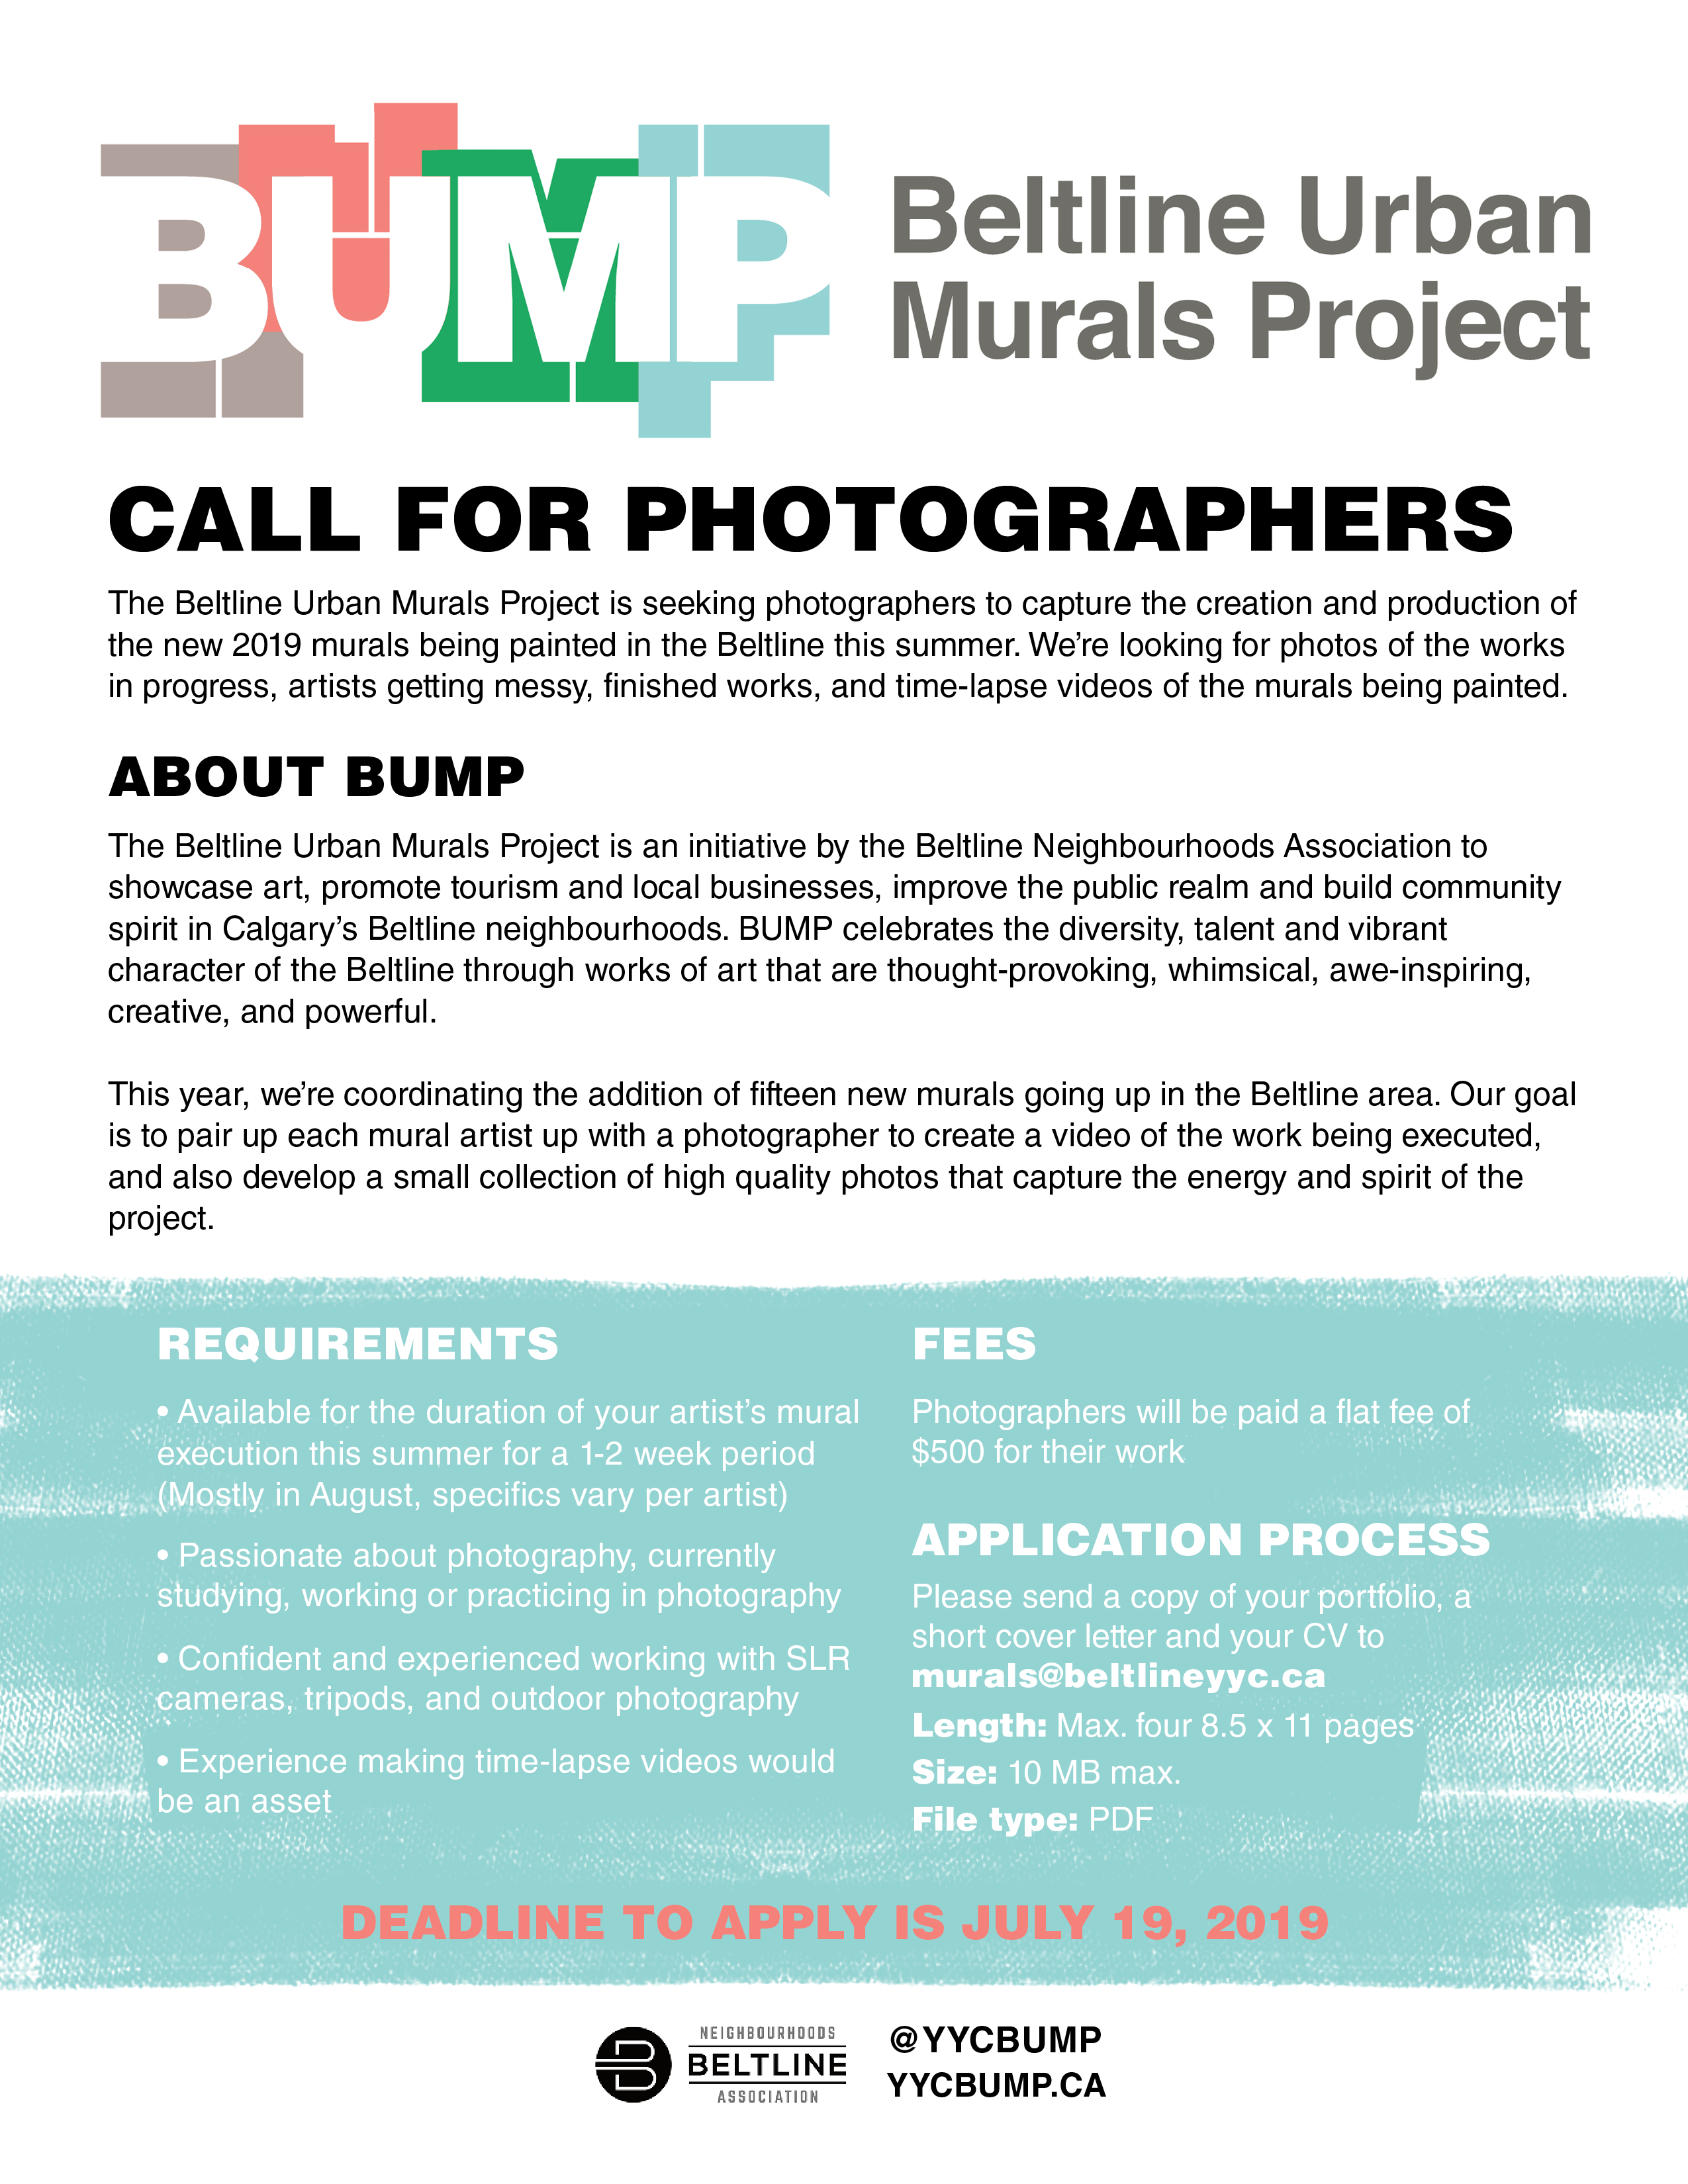 Deadline to Apply is July 19, 2019 - Photographers will be paid a flat fee of $500 for their work